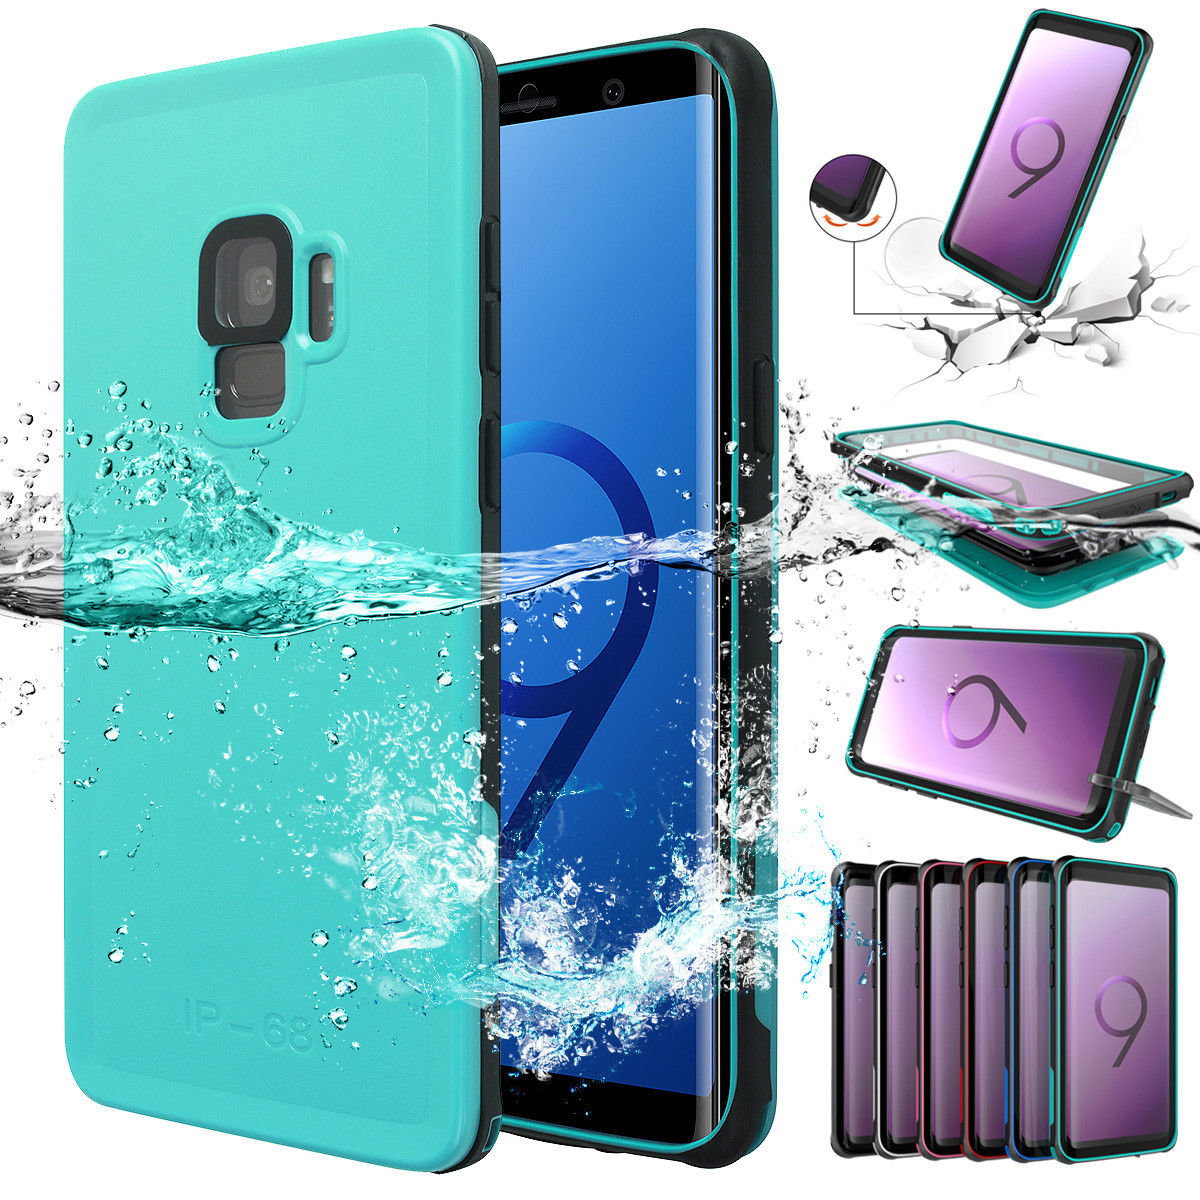 Waterproof Complete Enclosing Case Samsung Galaxy S9 or S9 Plus